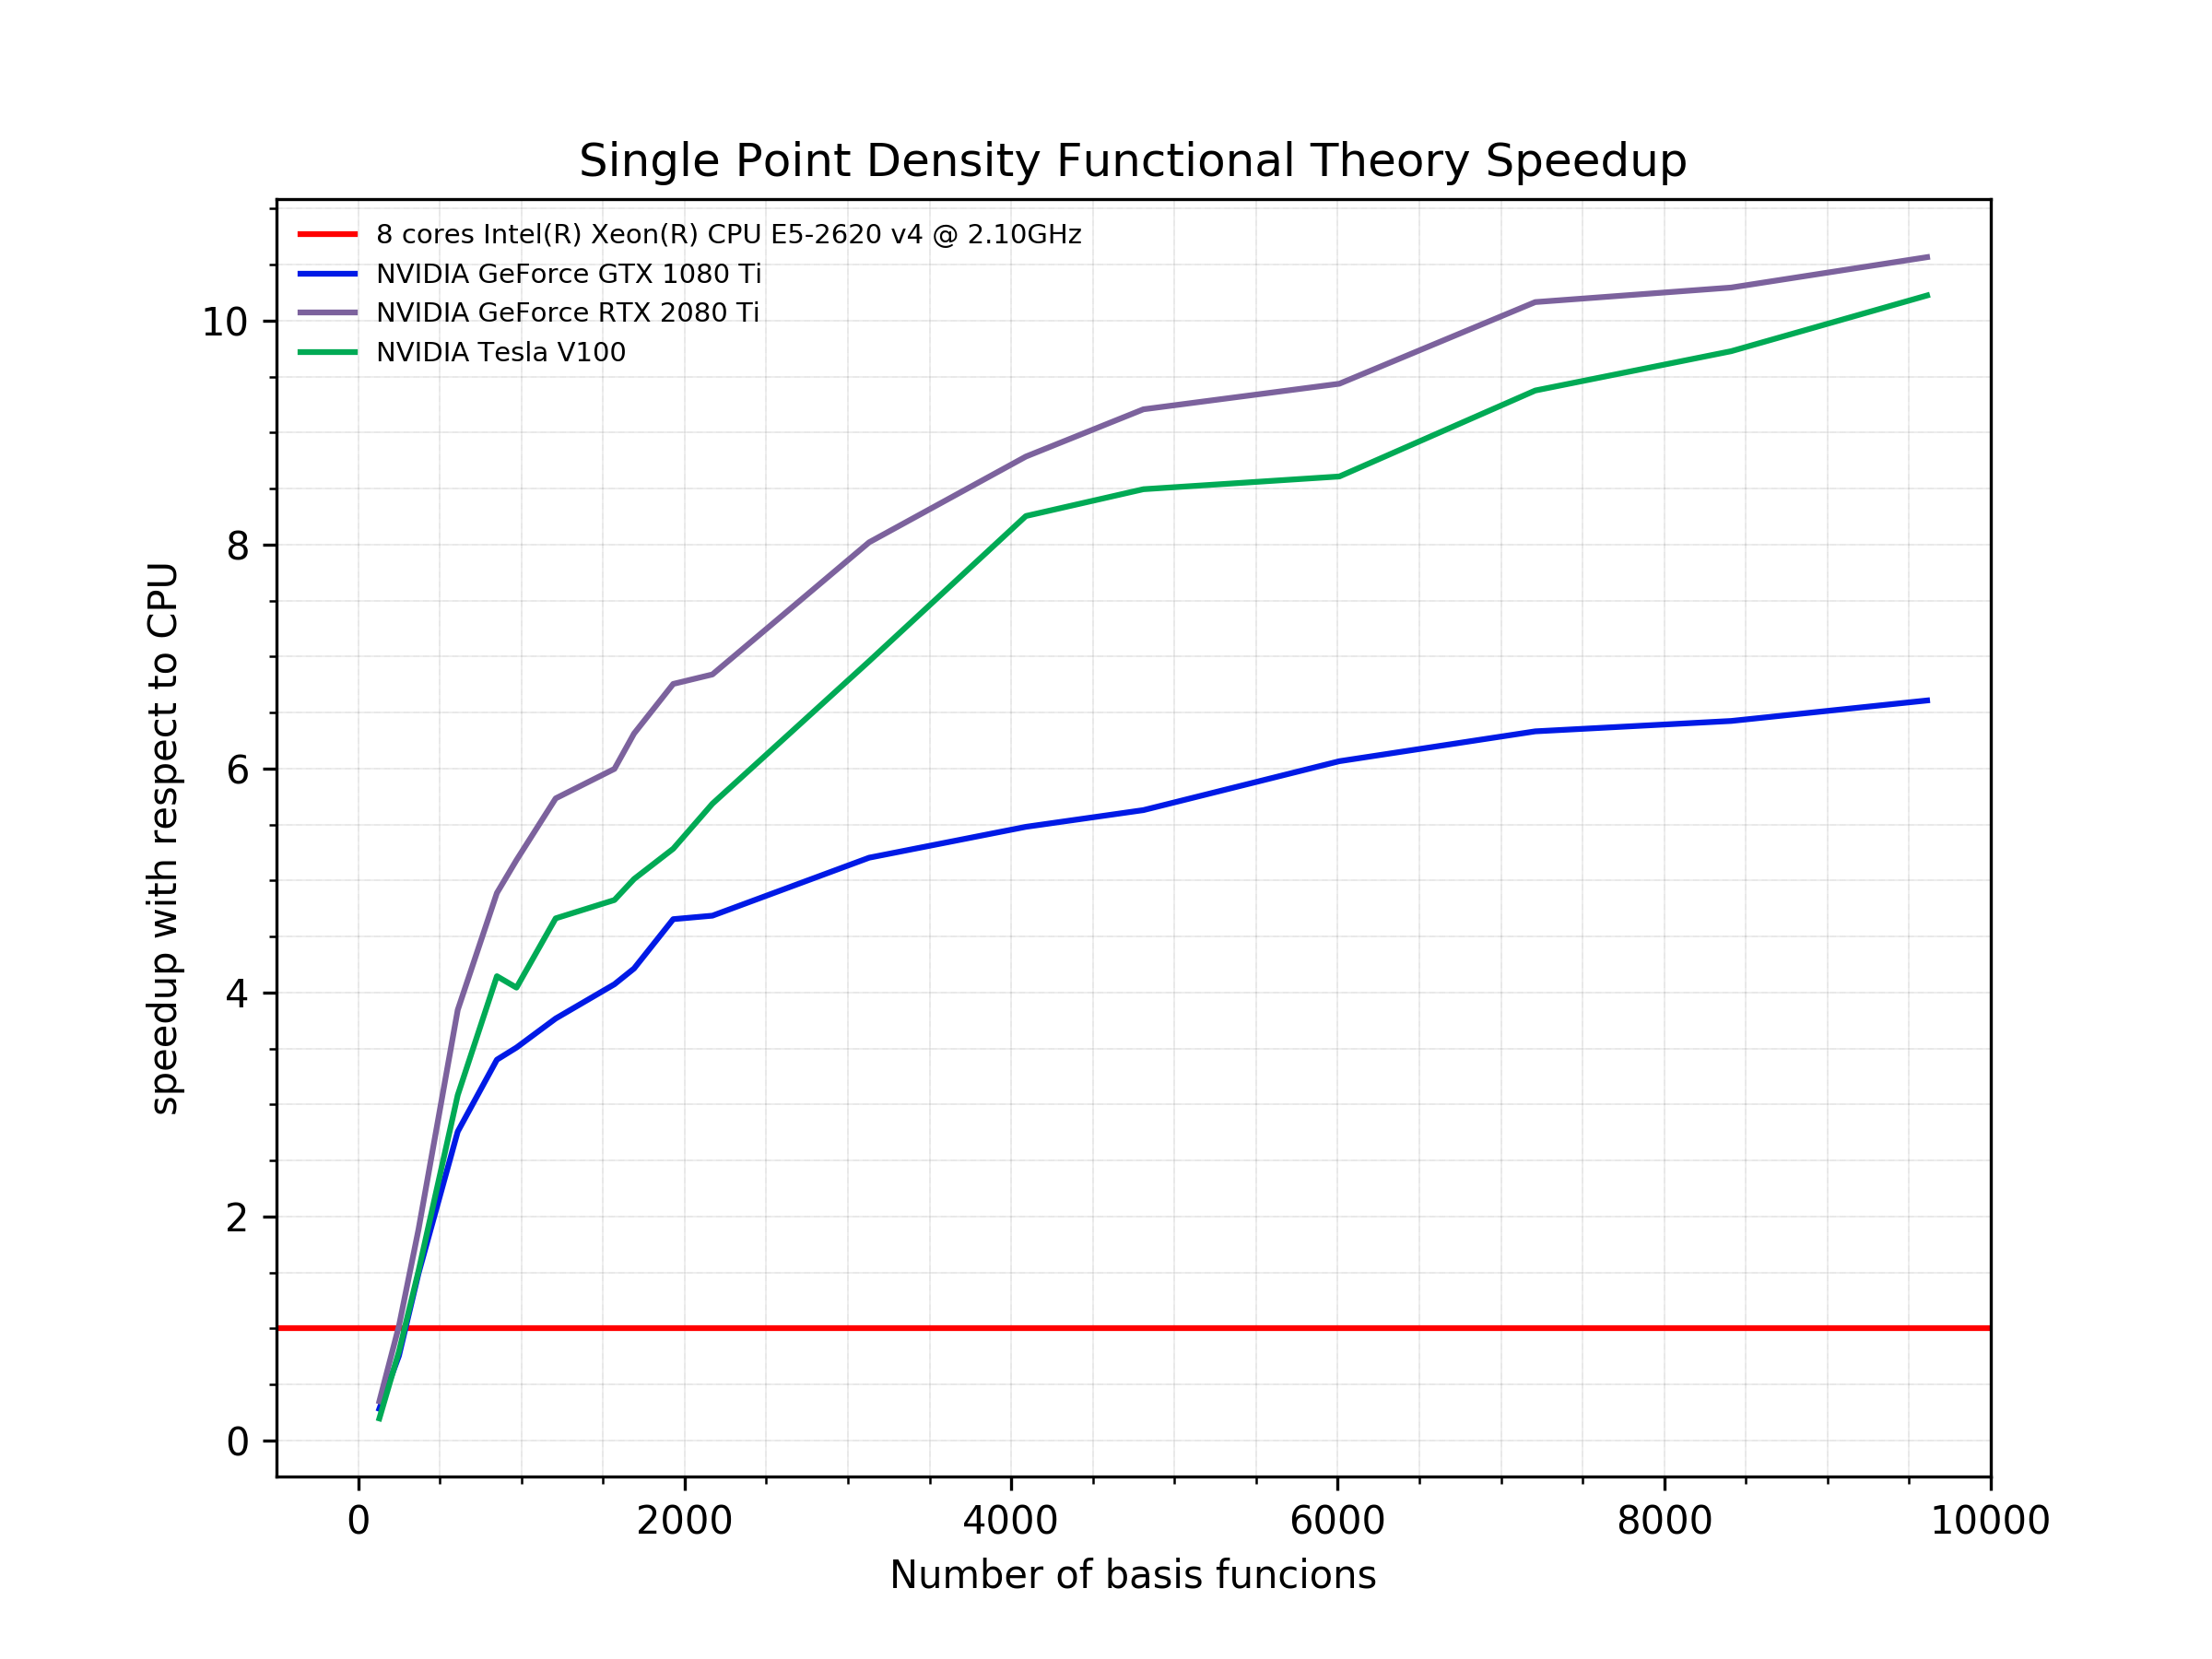 Single Point Density Functional Theory Speedup graph